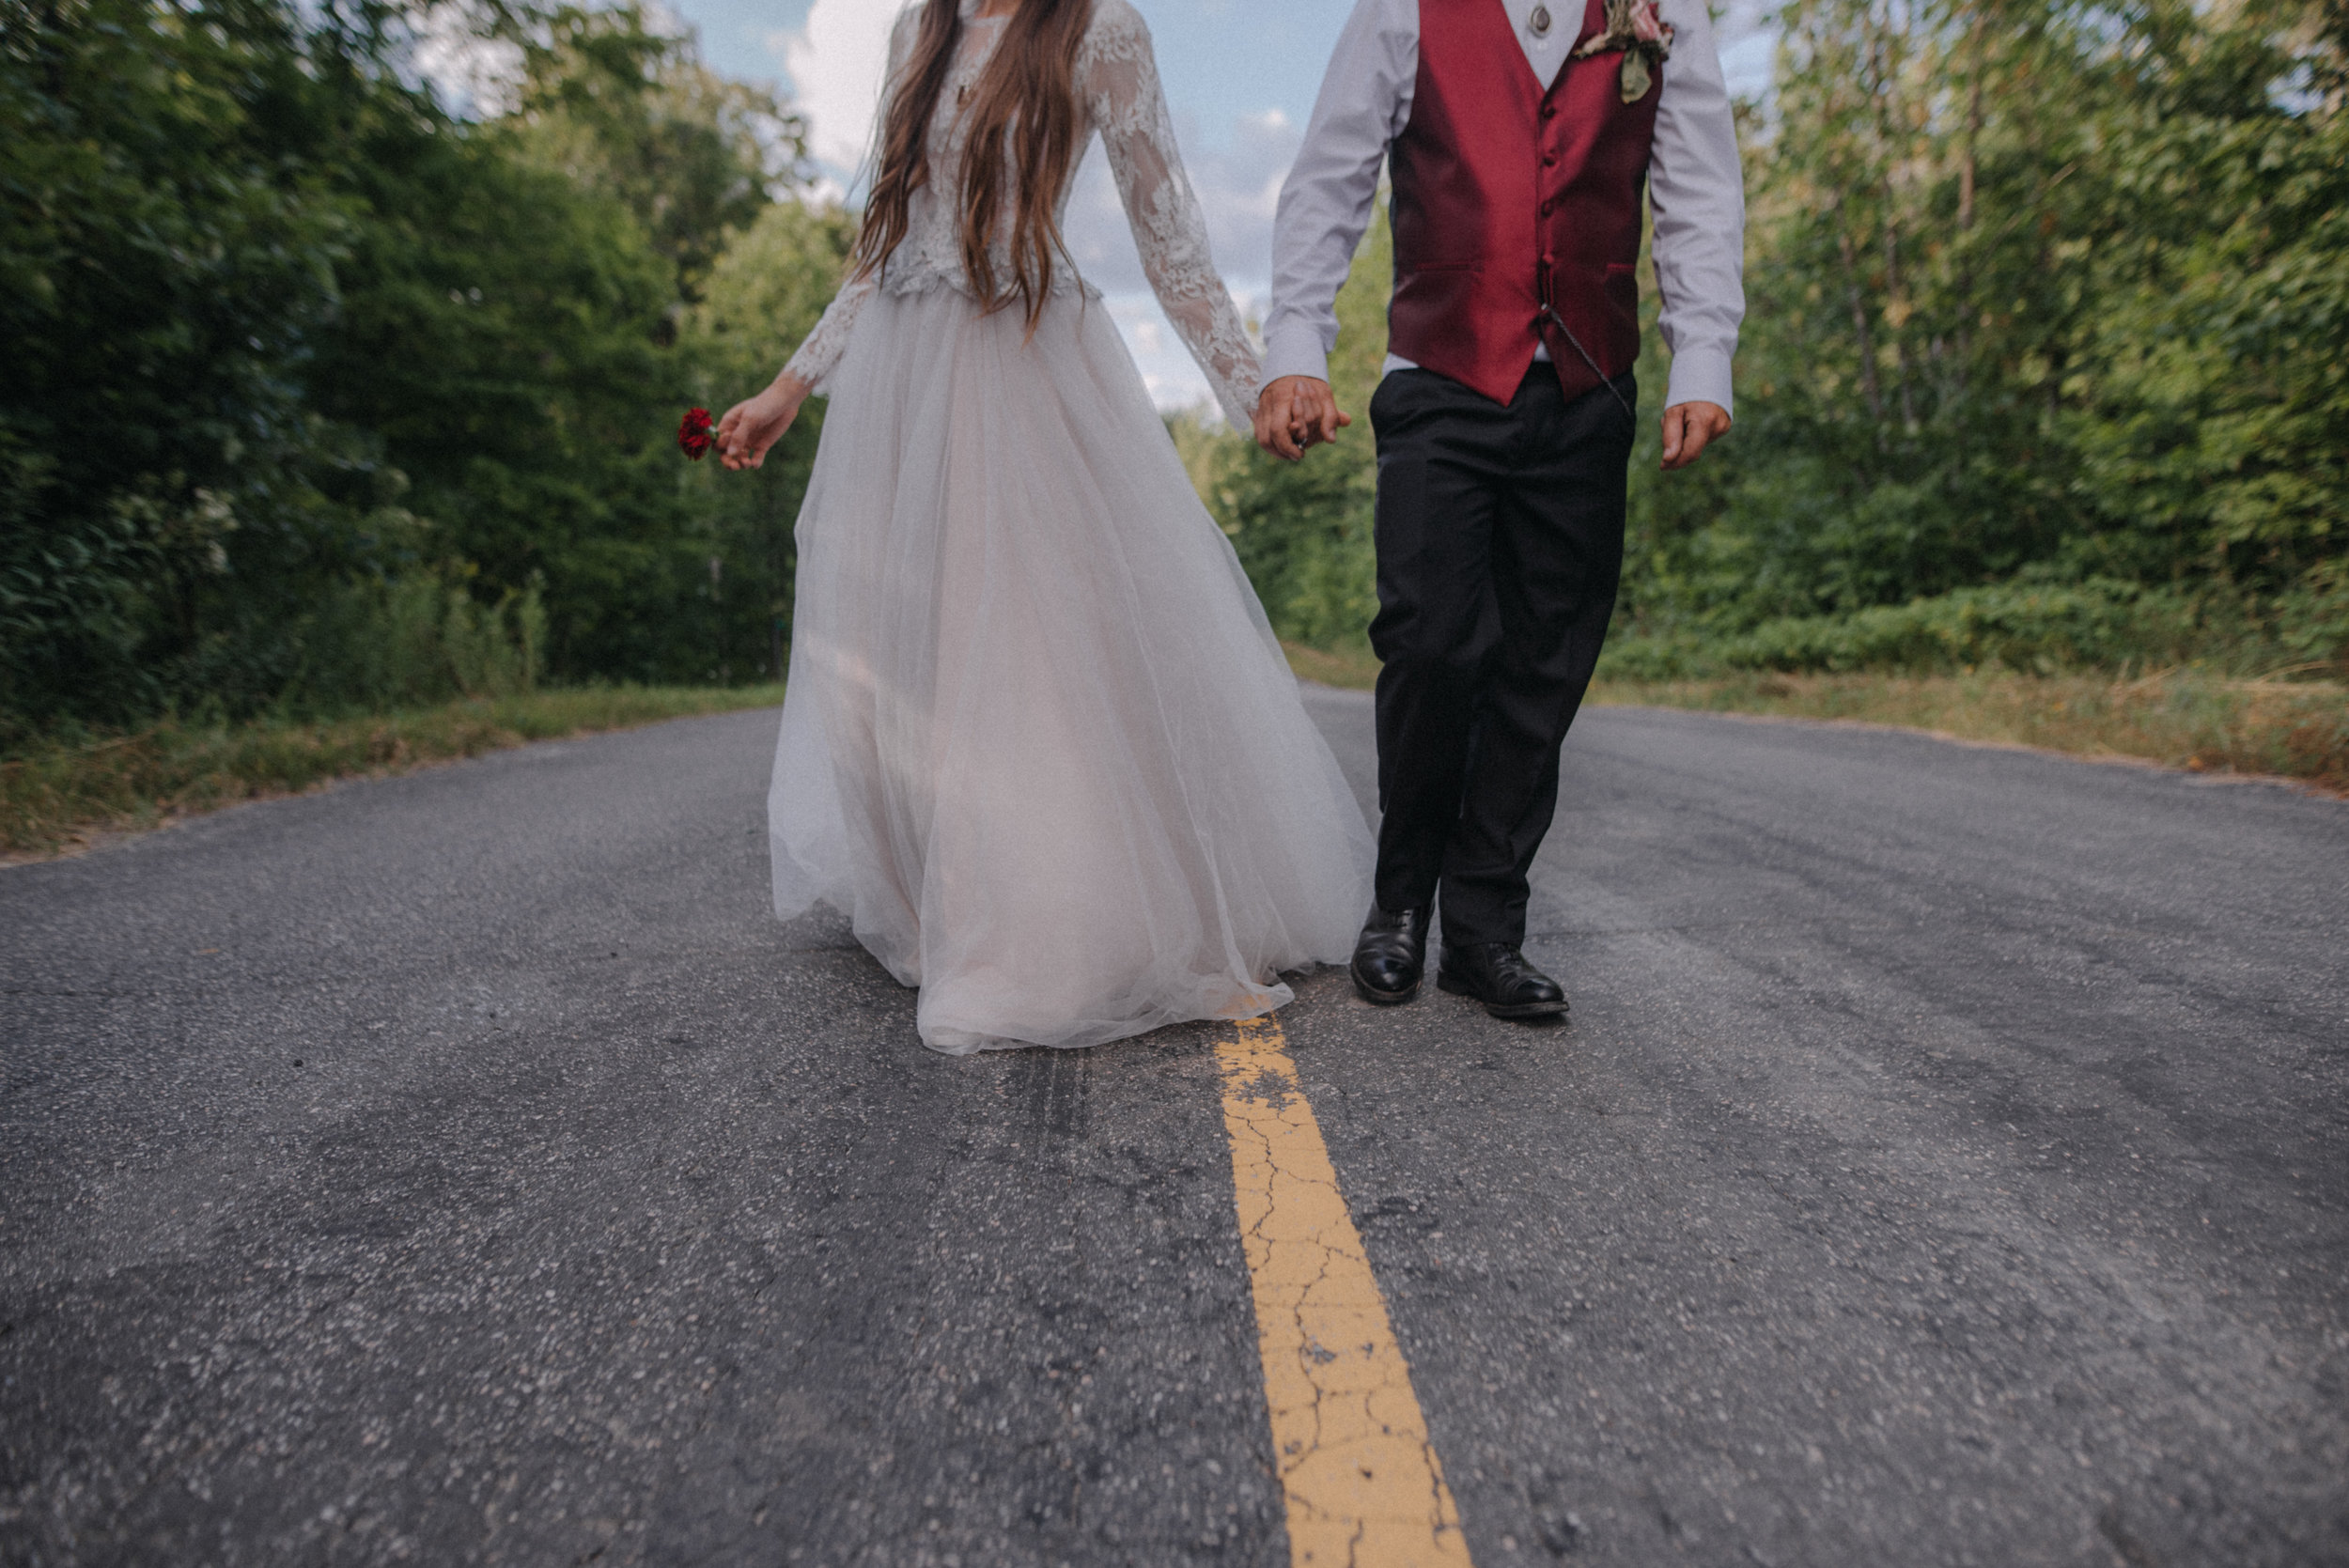 ottawa_wedding_photographer_gatineau_photographe_mariage_documentary_candid_photojournalist_natural_raw_boho_wedding_backyard (41).JPG